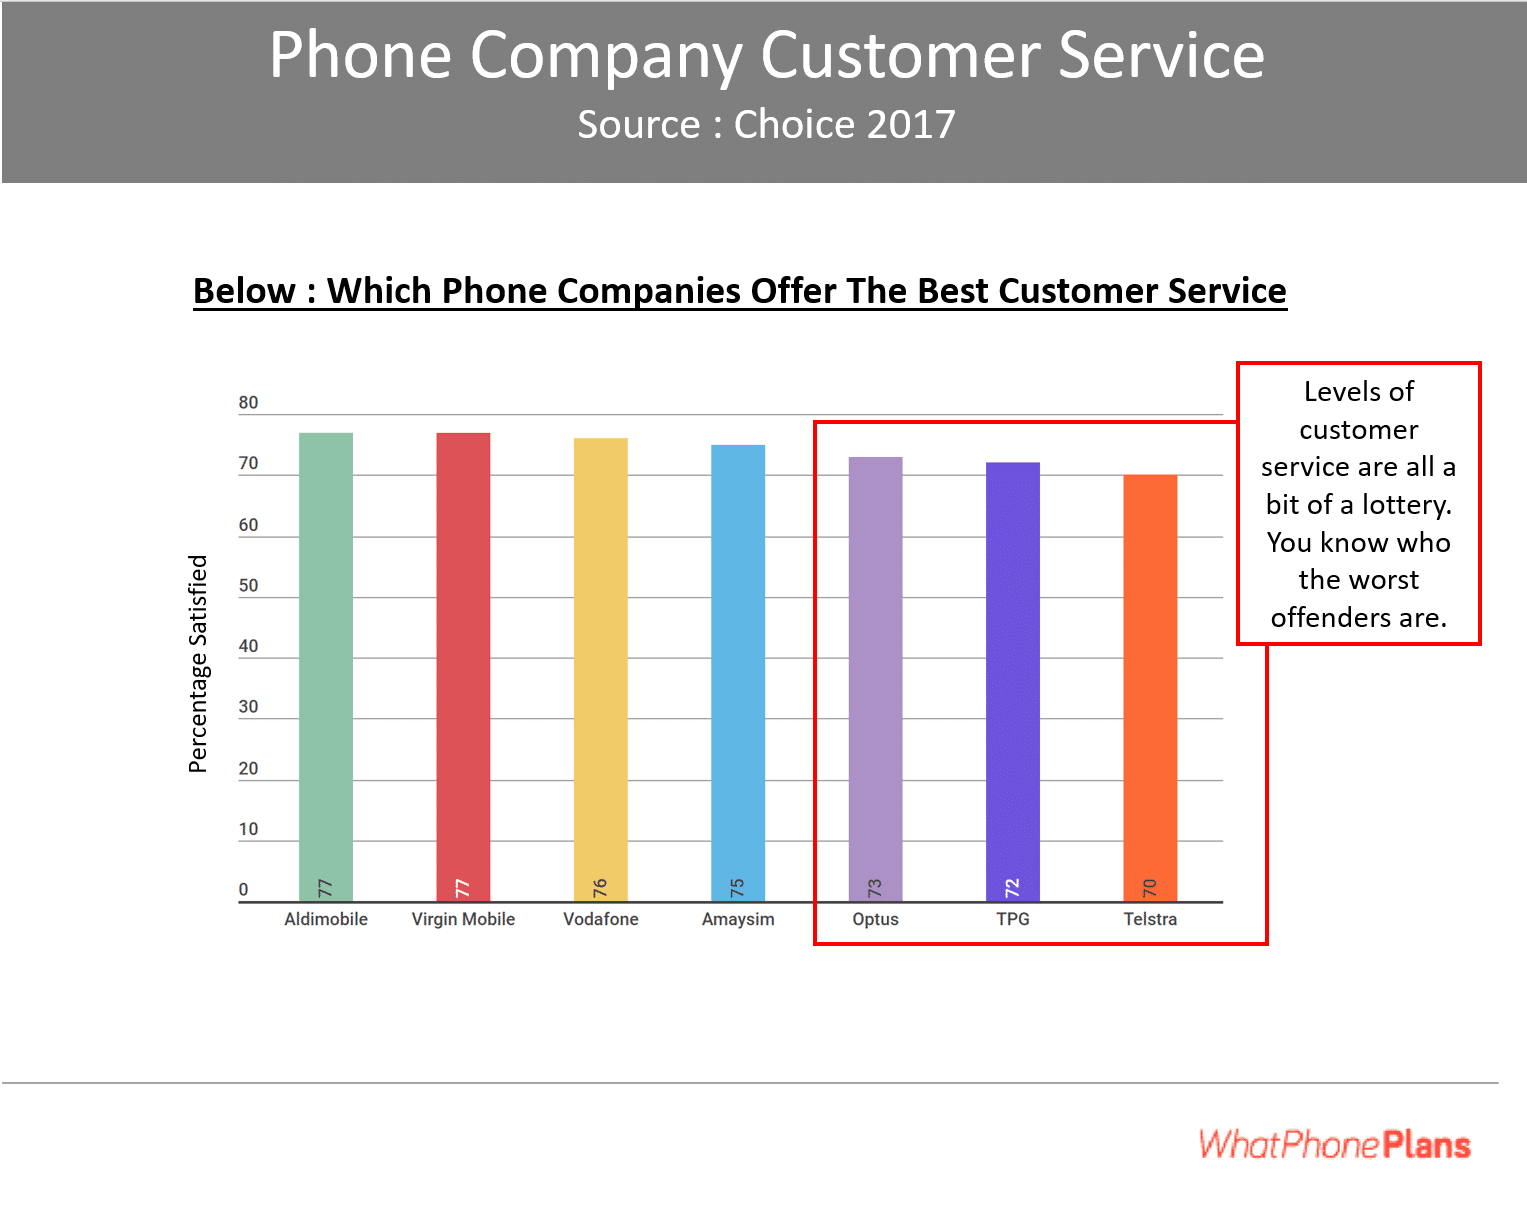 Customer Service is a key factor in consideration of the best network.